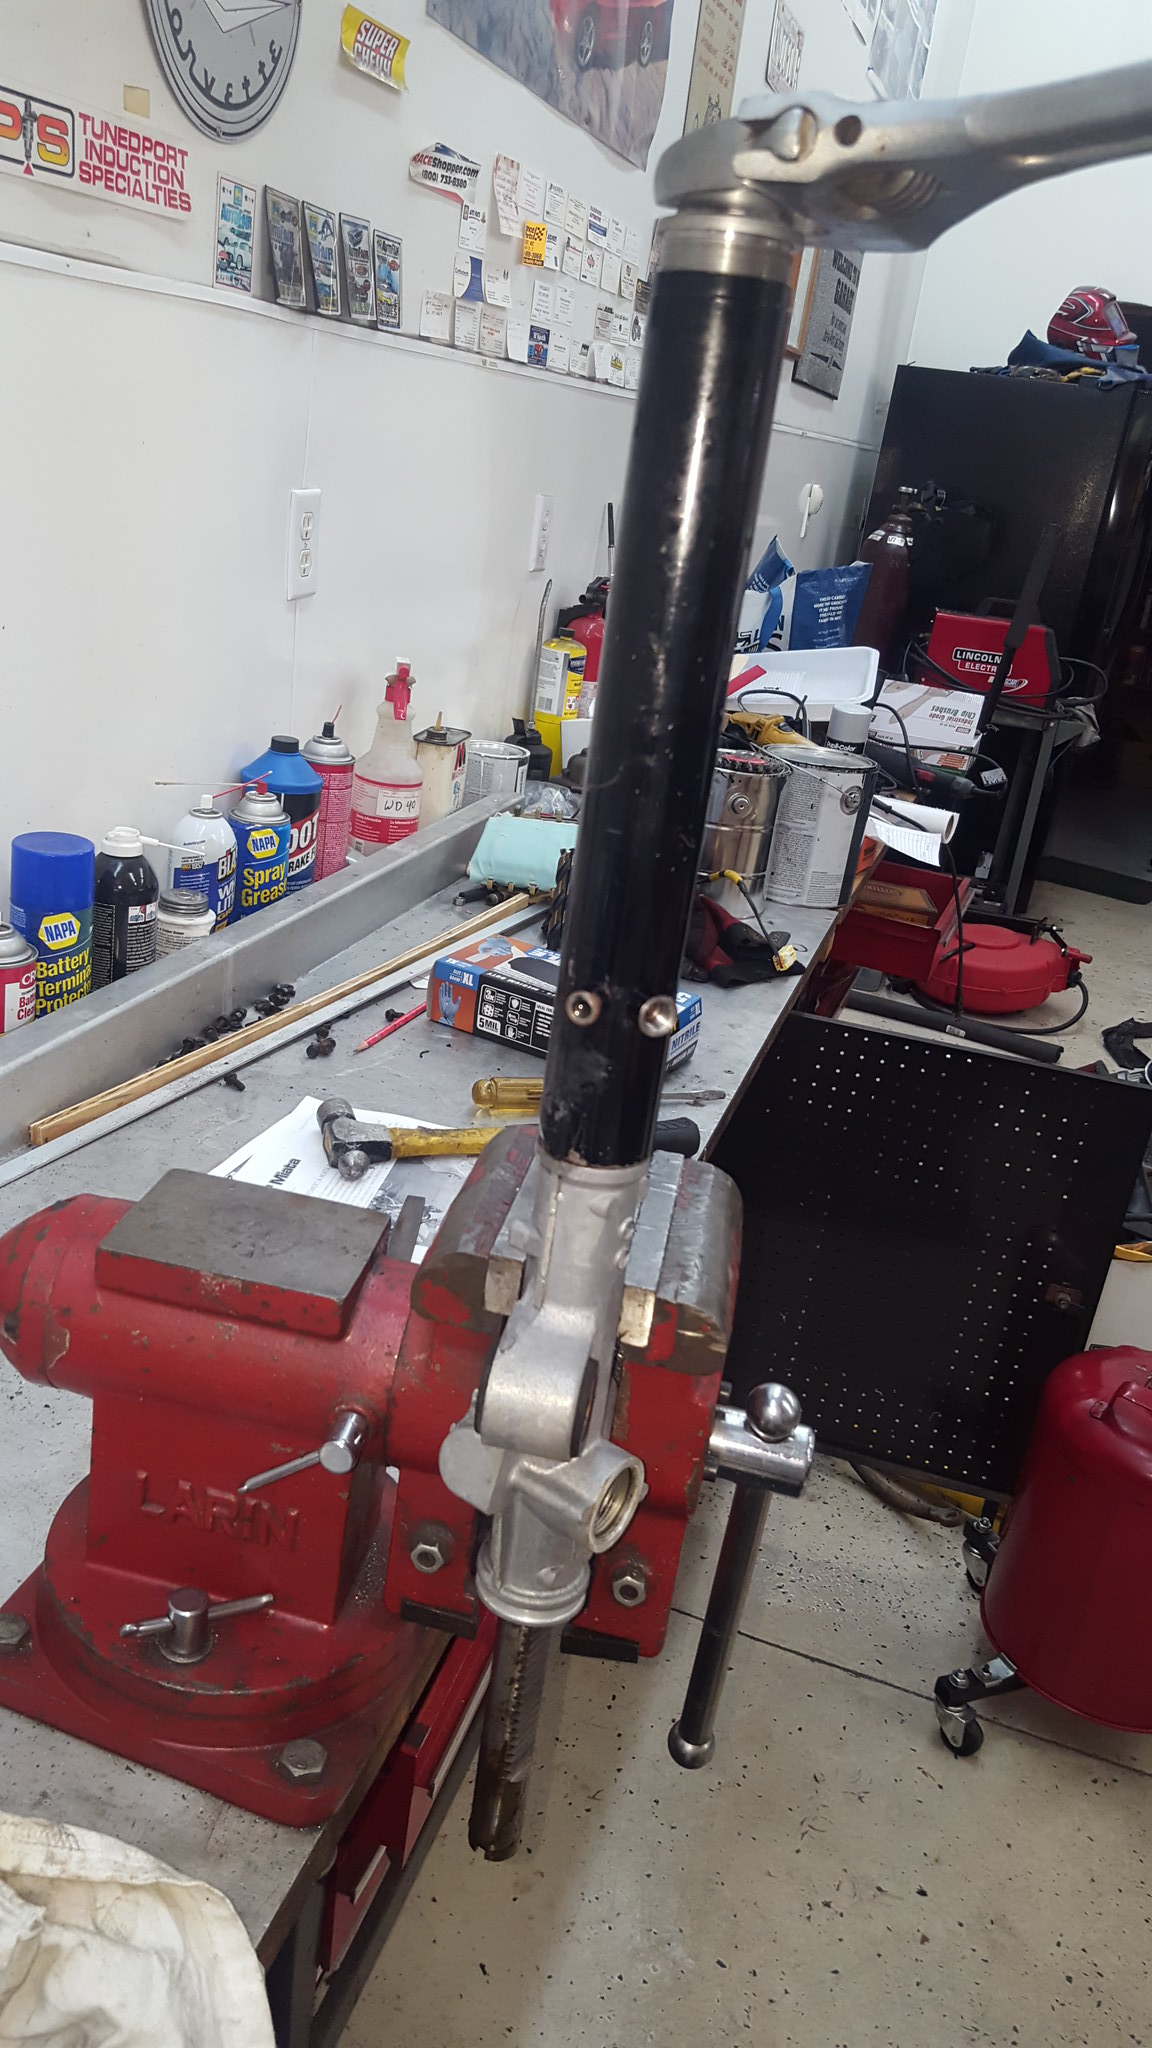 Nb 2018 Grm Challenge Turbo Miata Build With Added Insanity Having To Rewire An Entire Circuit Faulty Breaker Caused Flickr 20180616 121228 By Michael Crawford On